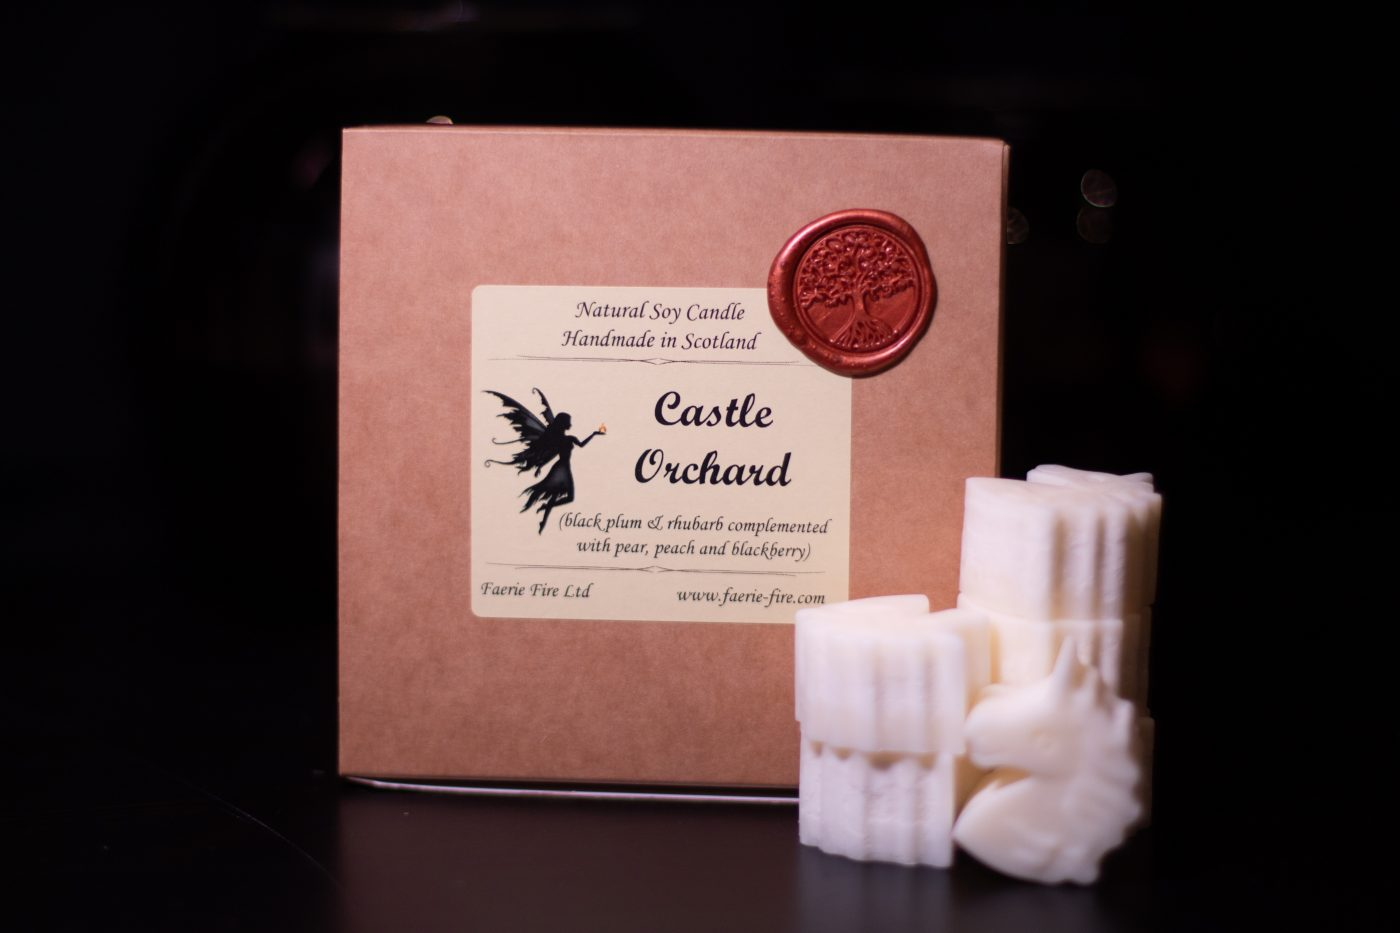 Castle Orchard Soy Wax Melts scaled